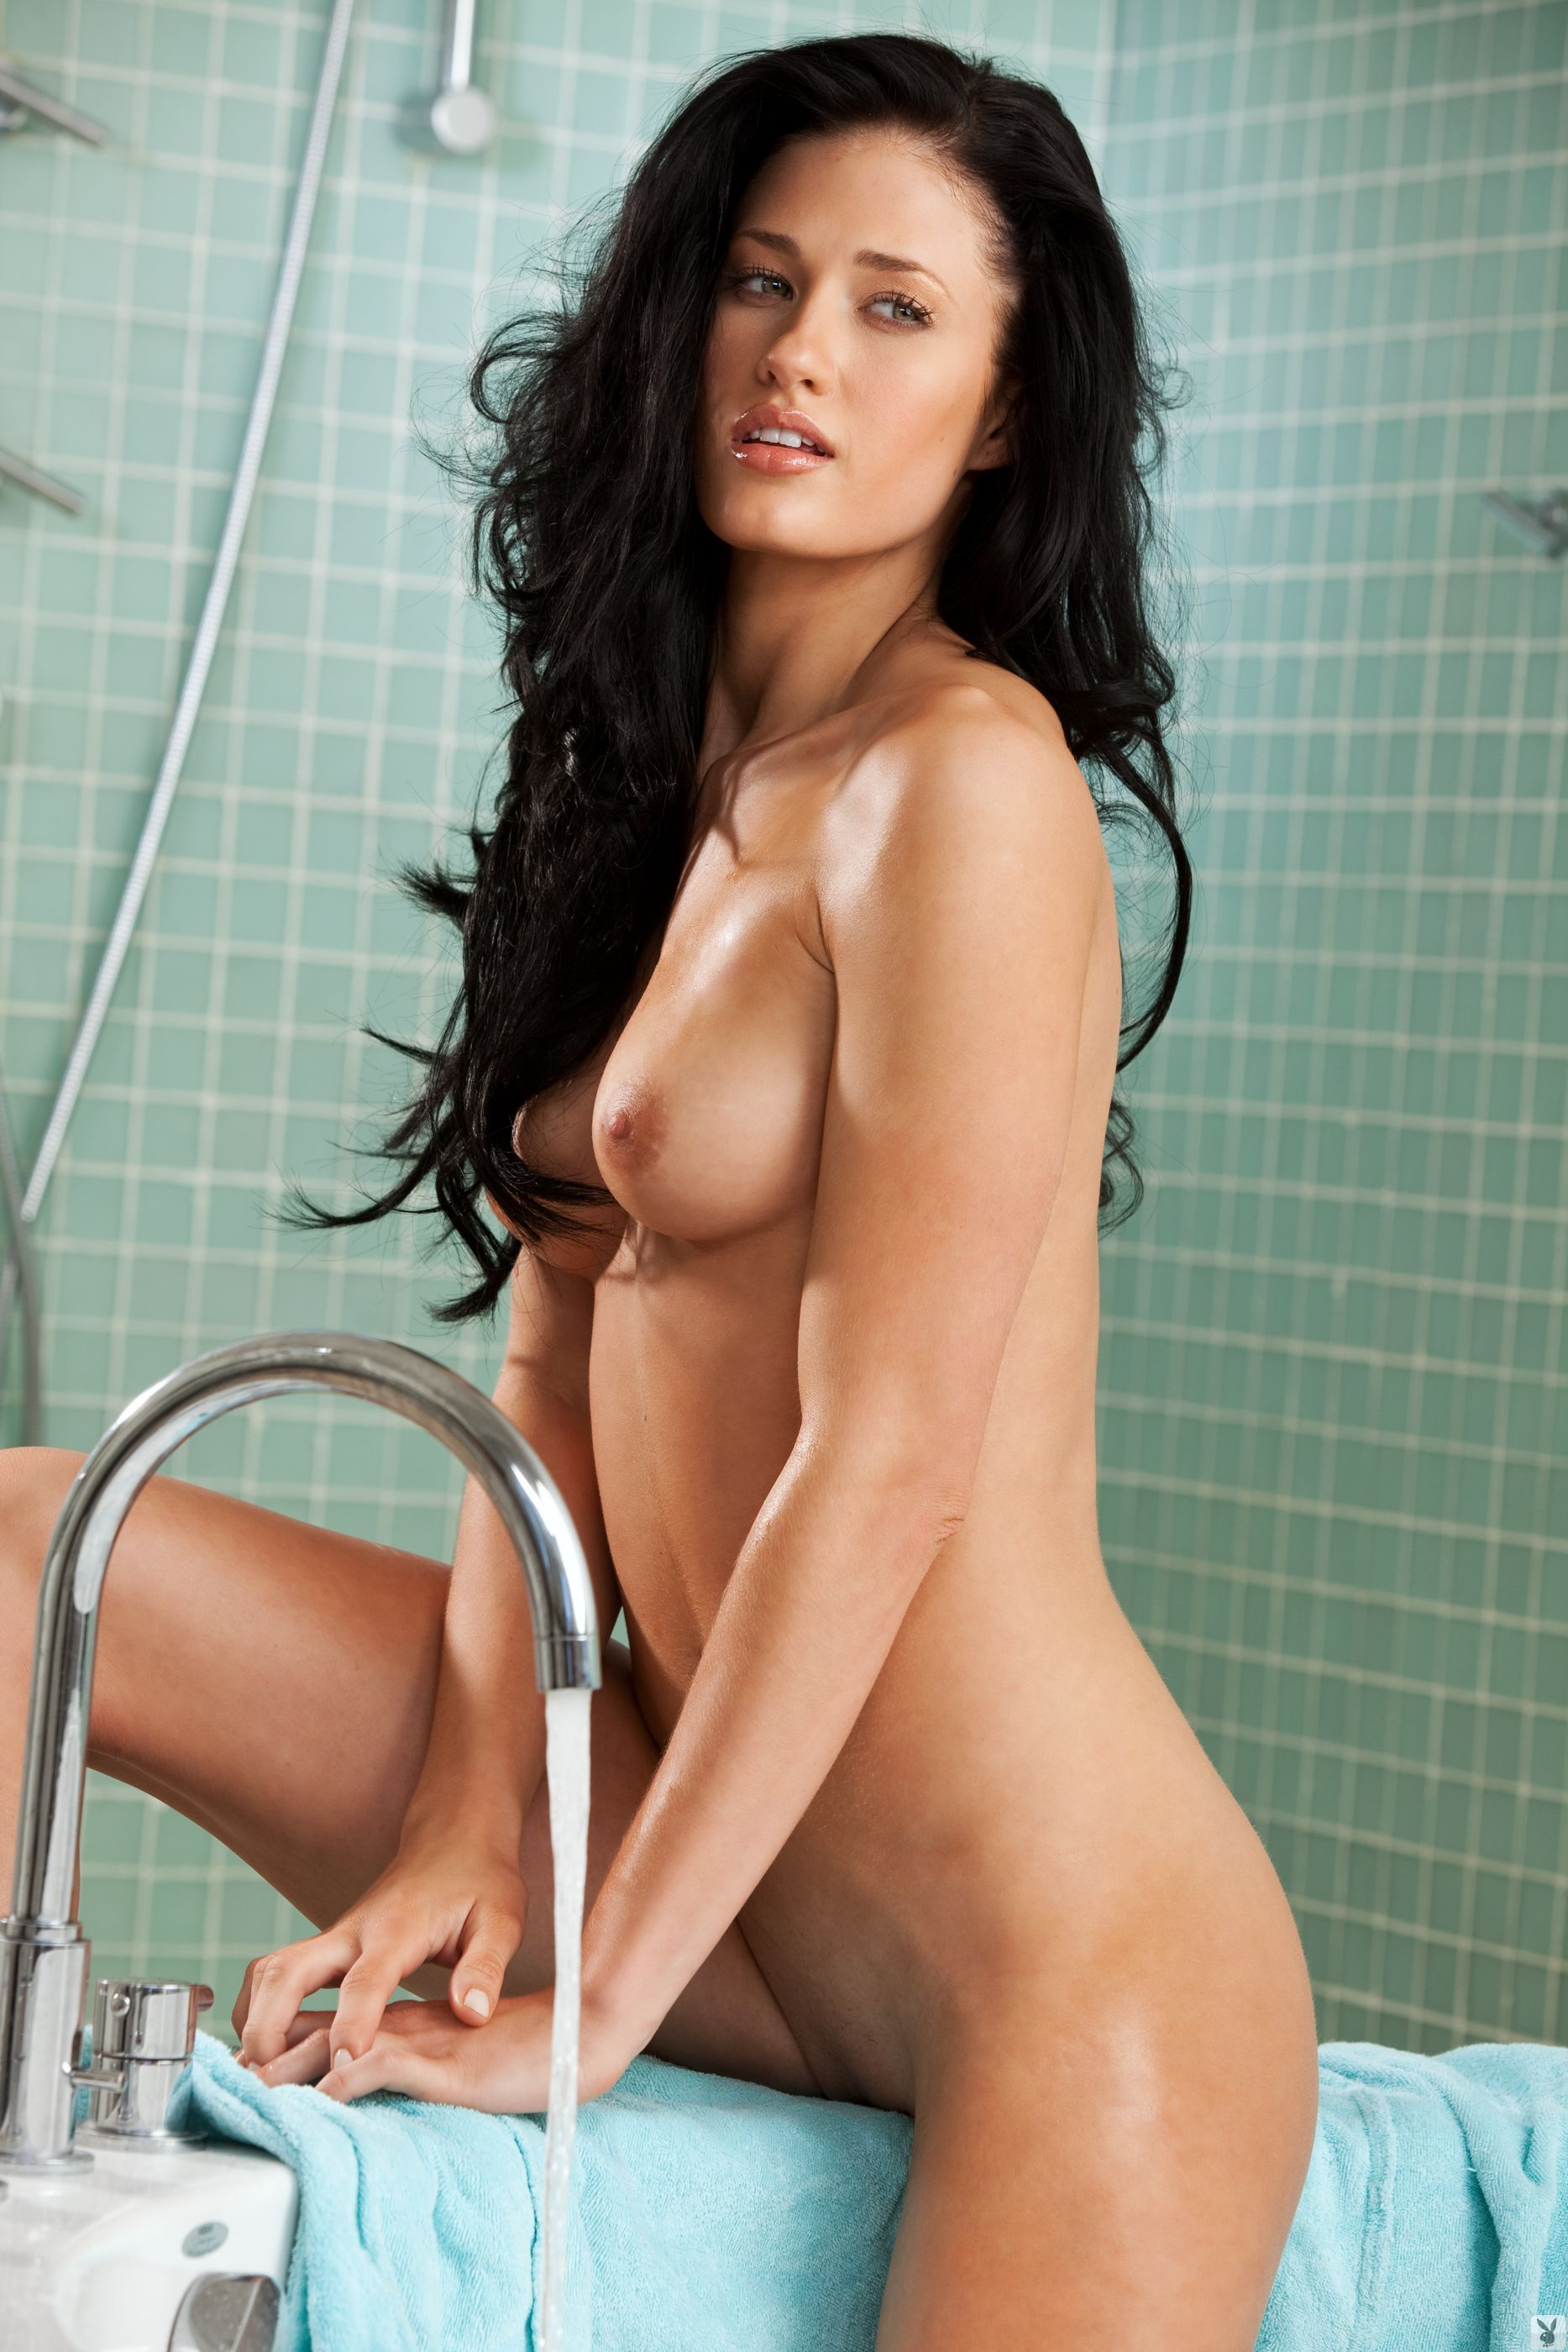 ashton-winters-brunette-nude-bathroom-playboy-17